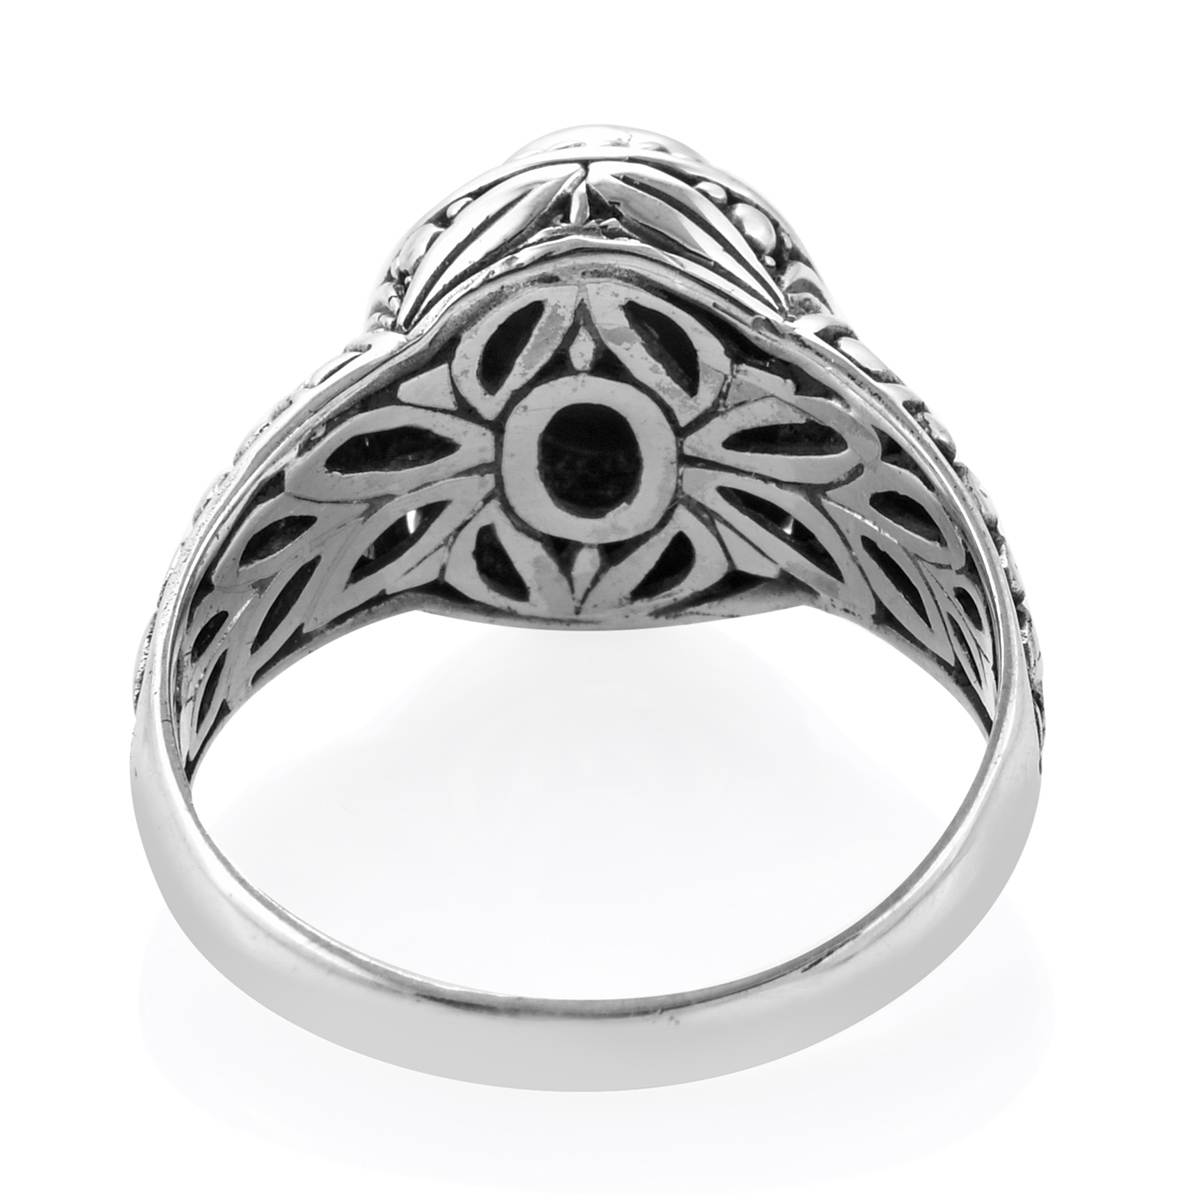 Bali Legacy Arizona Sleeping Beauty Turquoise Ring in Sterling Silver (Size 6.0) 1.81 ctw